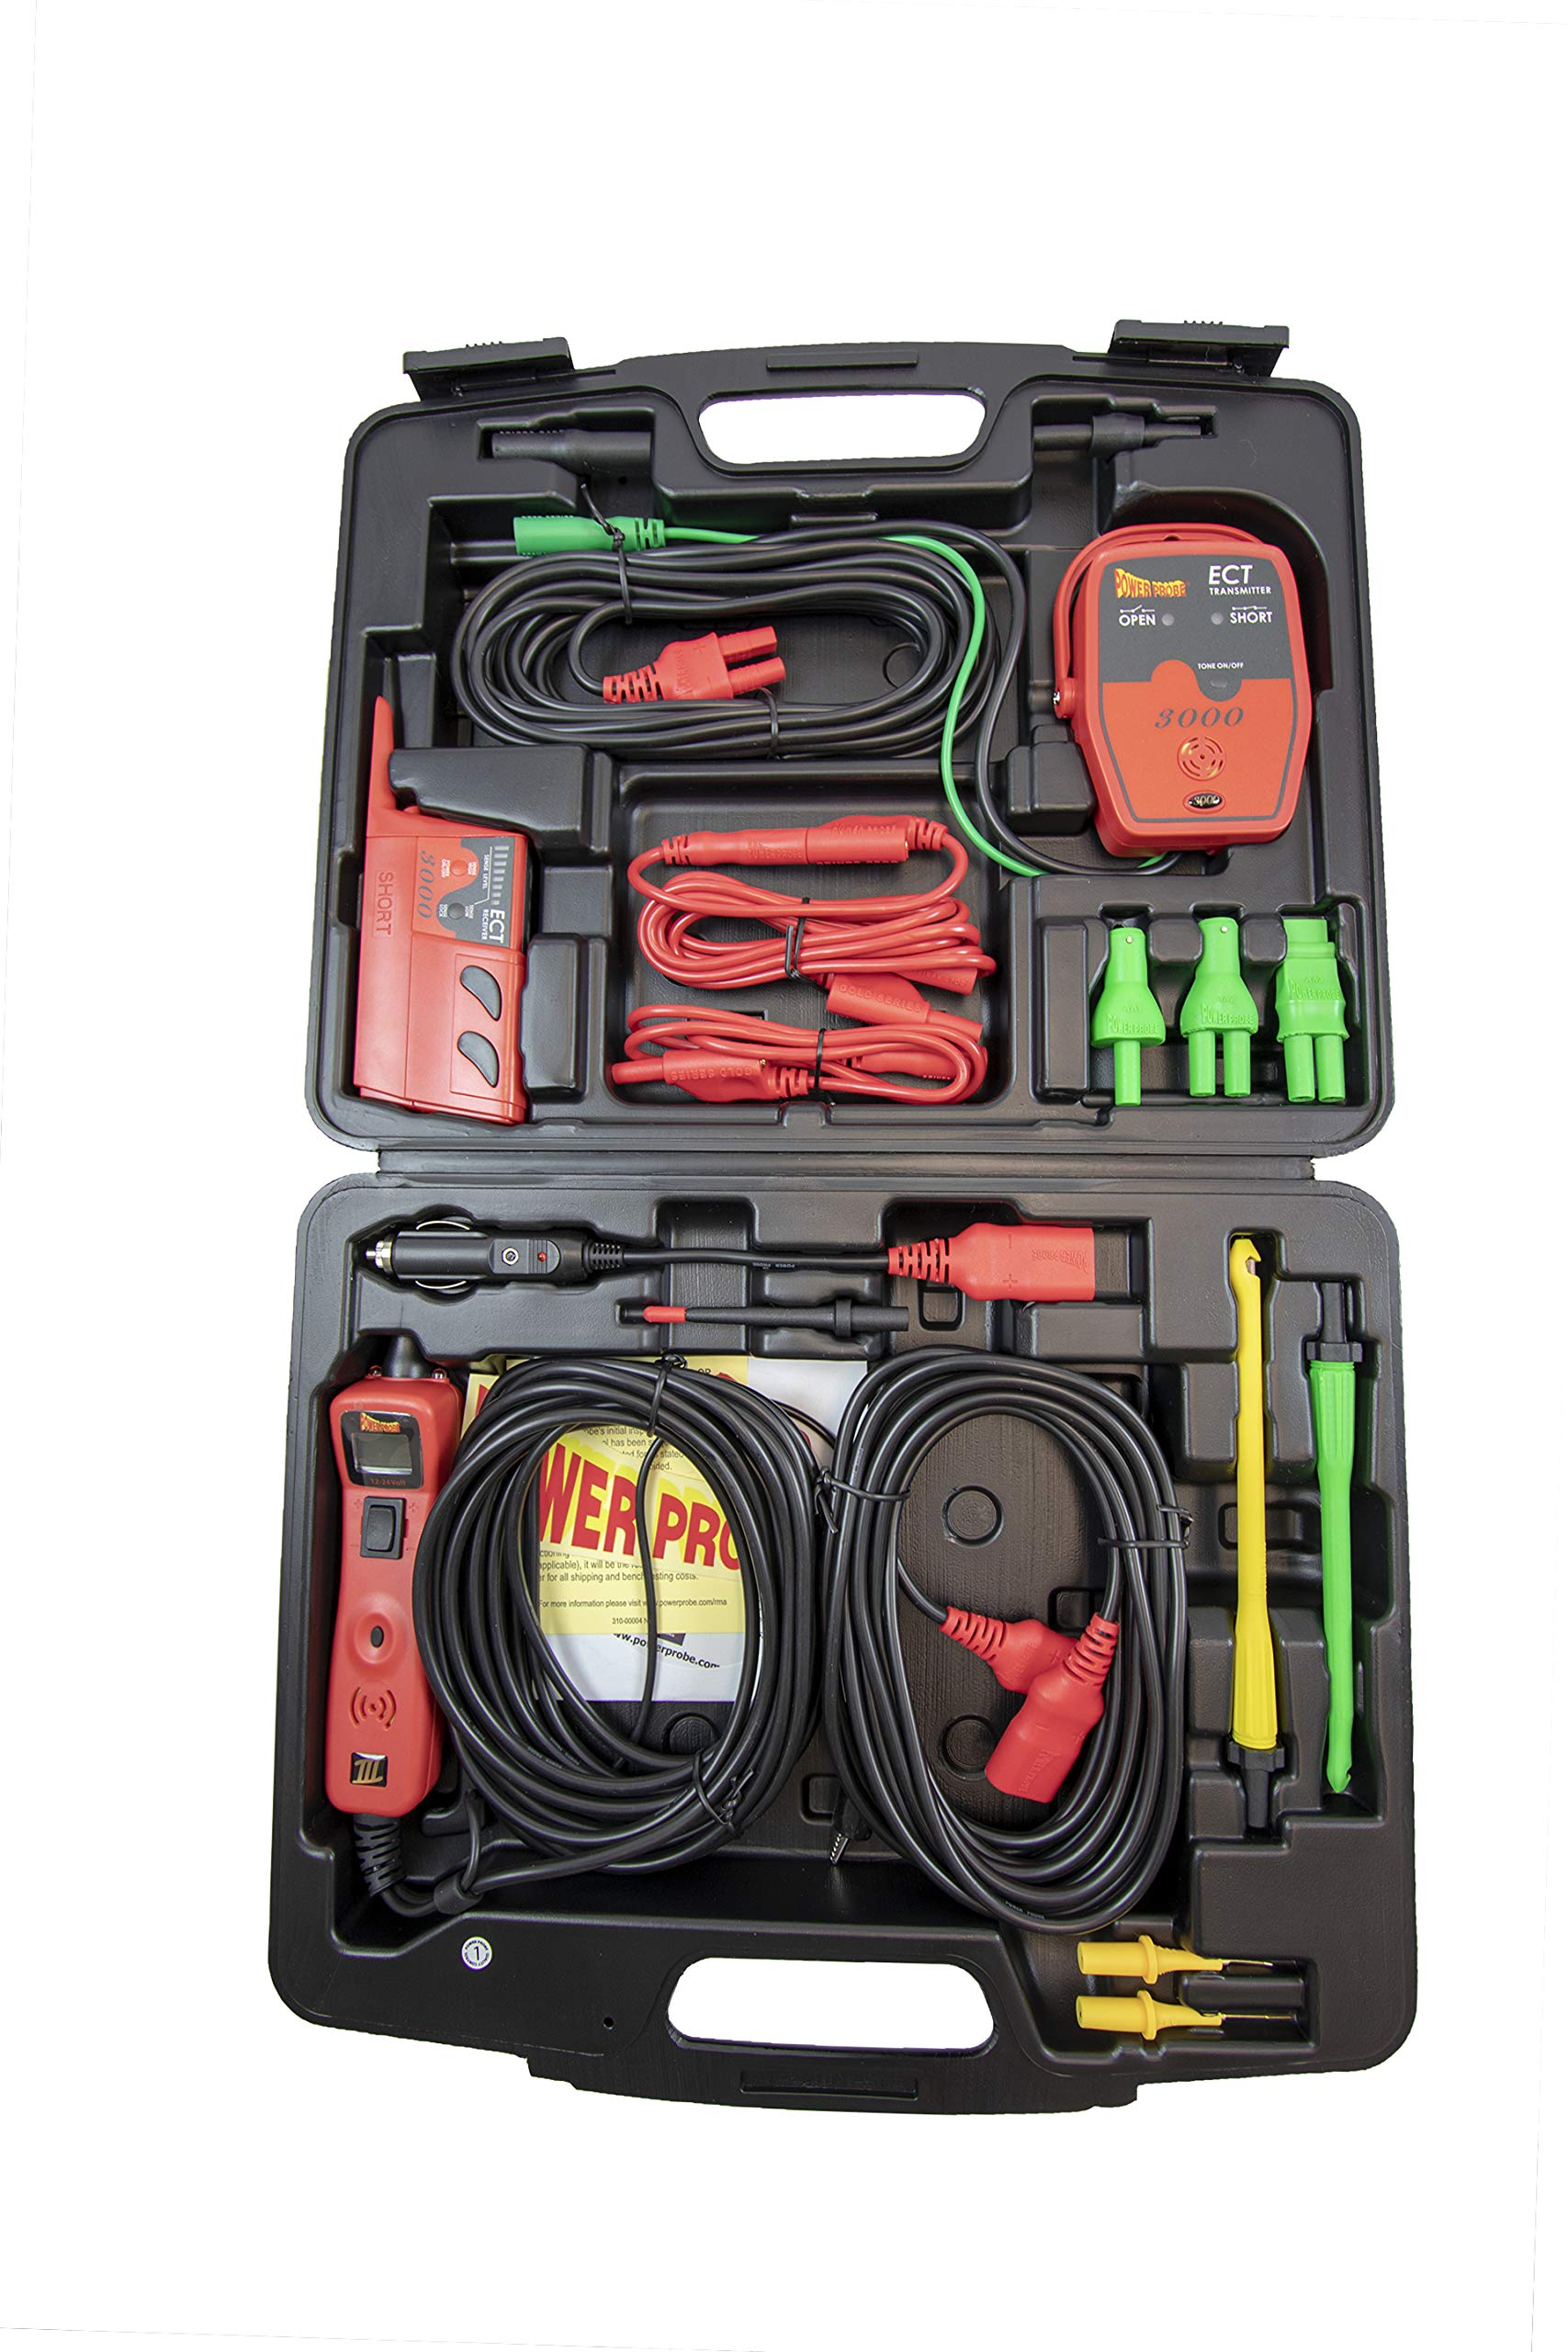 Diesel Laptops Power Probe IV Master Combo Kit Bundled with 12-Months of Truck Fault Codes by Diesel Laptops (Image #7)